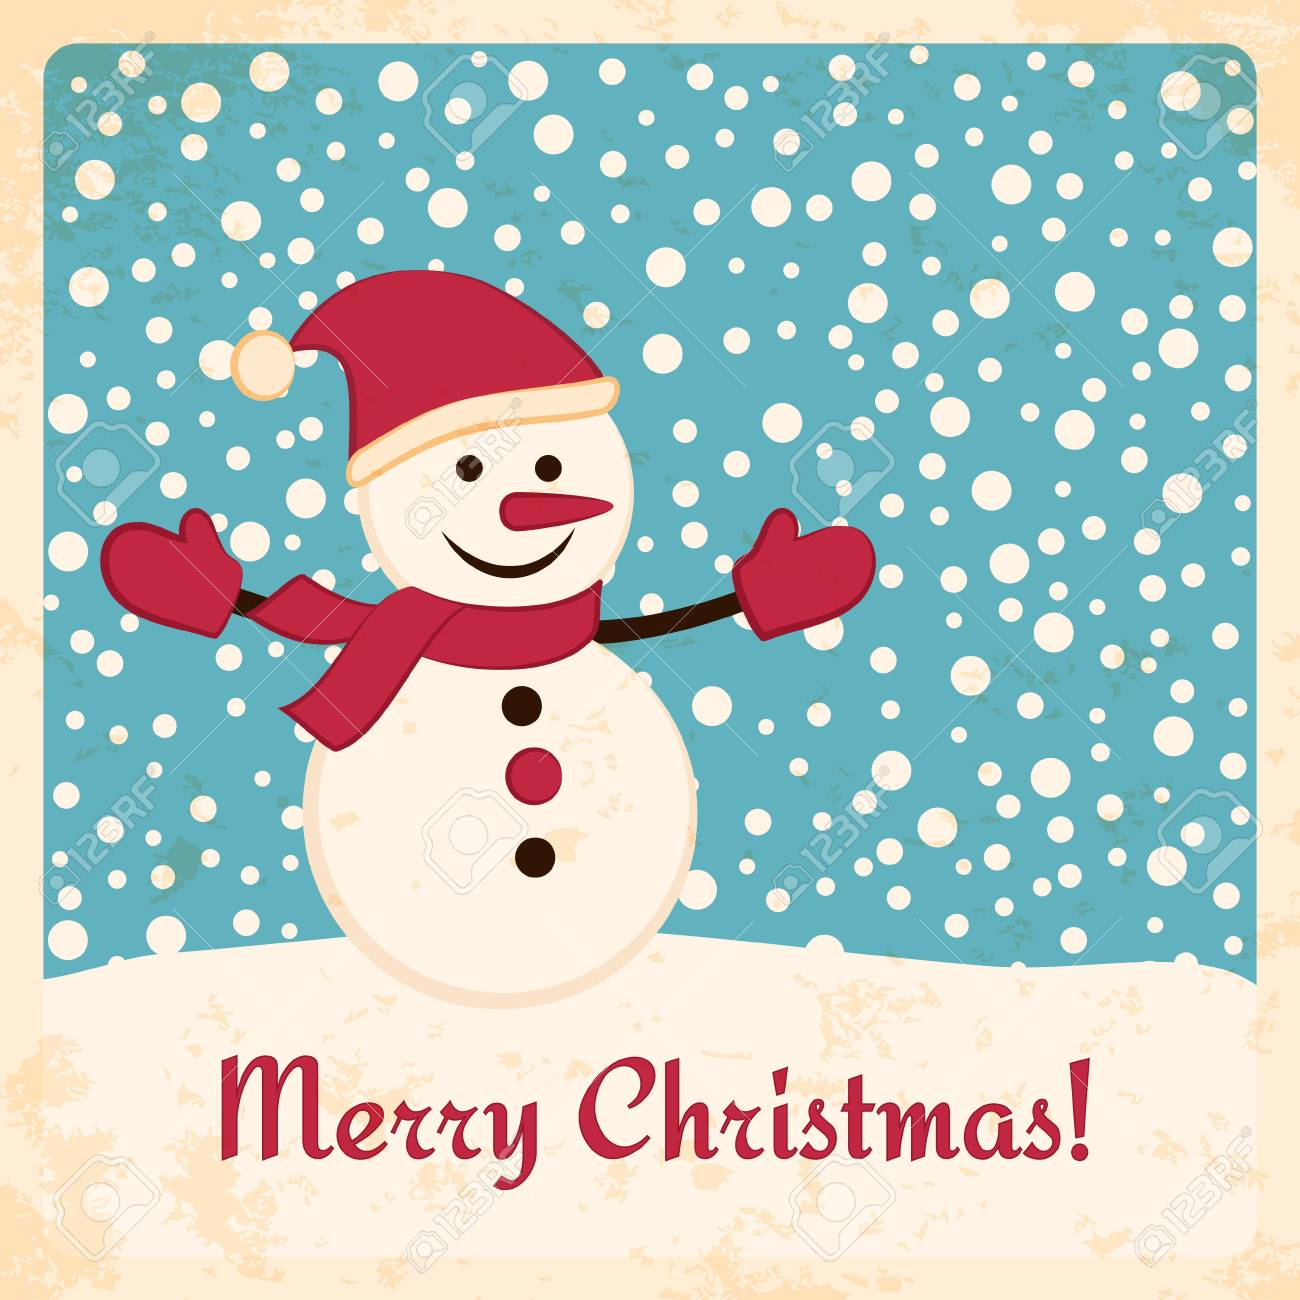 Retro Christmas Card With Happy Snowman On Falling Snow Background ...